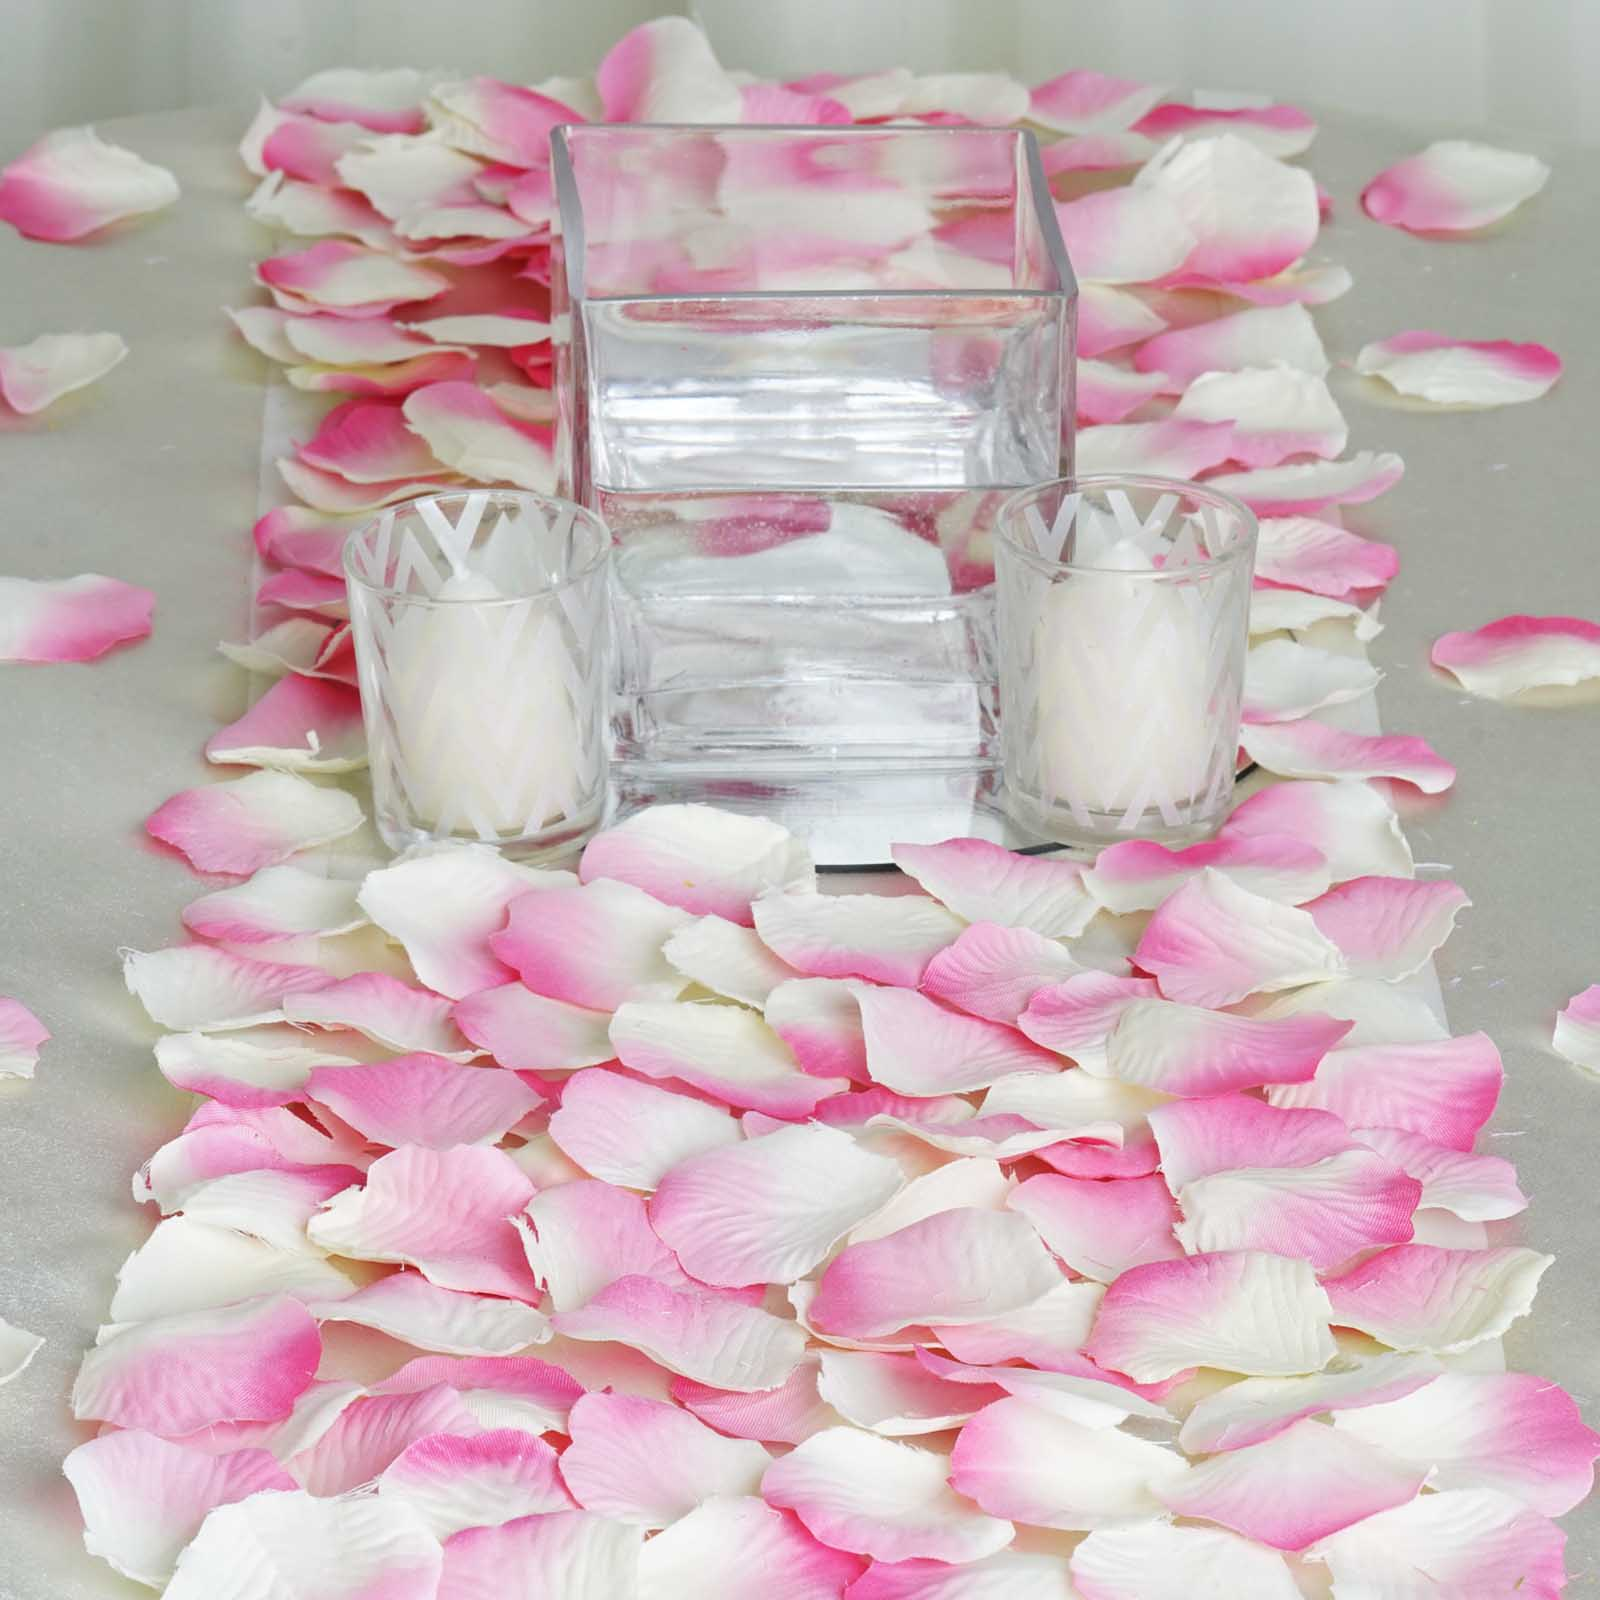 Wedding Decorations Cheap: 2000 Silk Rose Petals Wedding Favors Wholesale Cheap